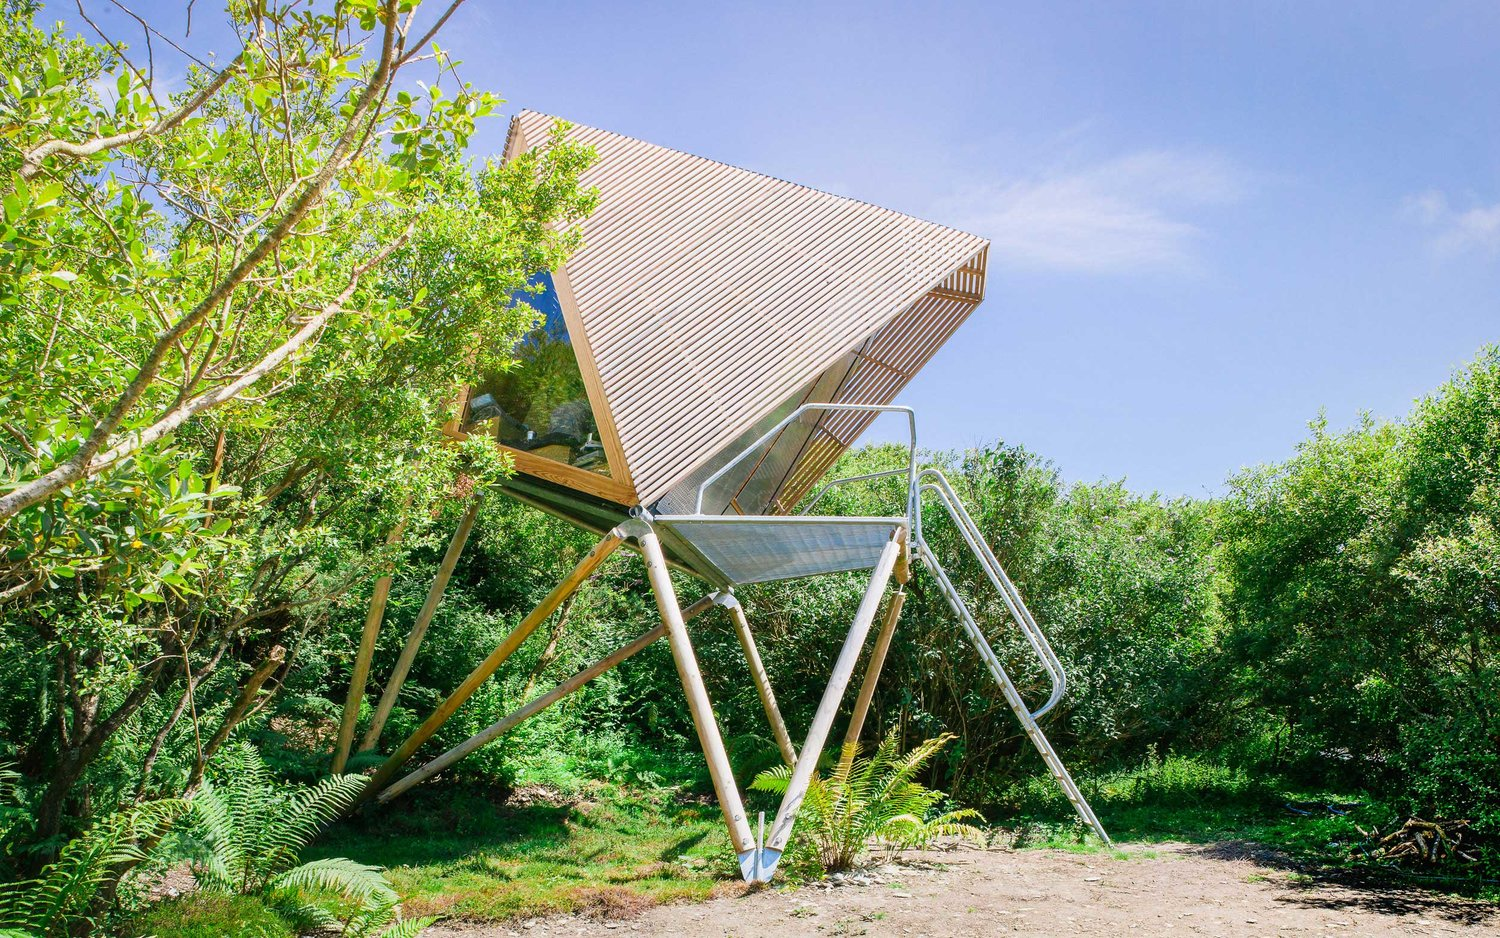 kudhva-off-grid-cabins-cornwall-3